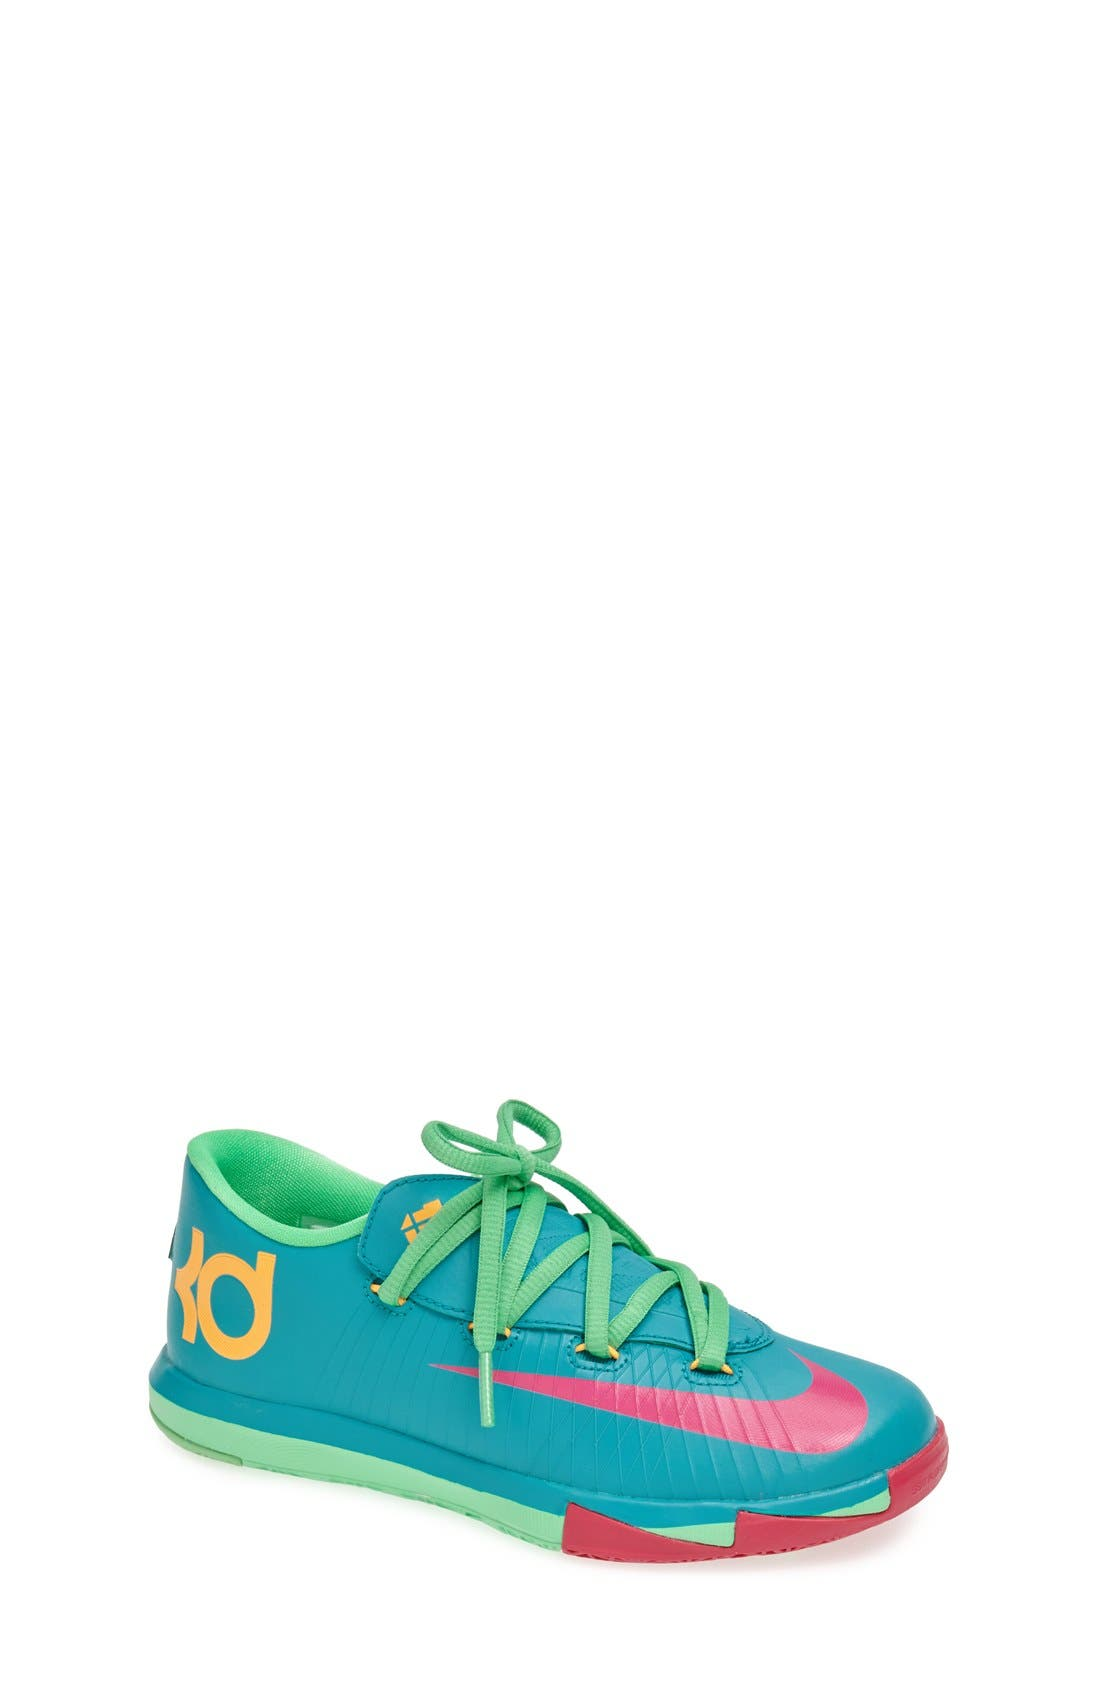 Alternate Image 1 Selected - Nike 'KD VI' Basketball Shoe (Walker, Toddler & Little Kid)